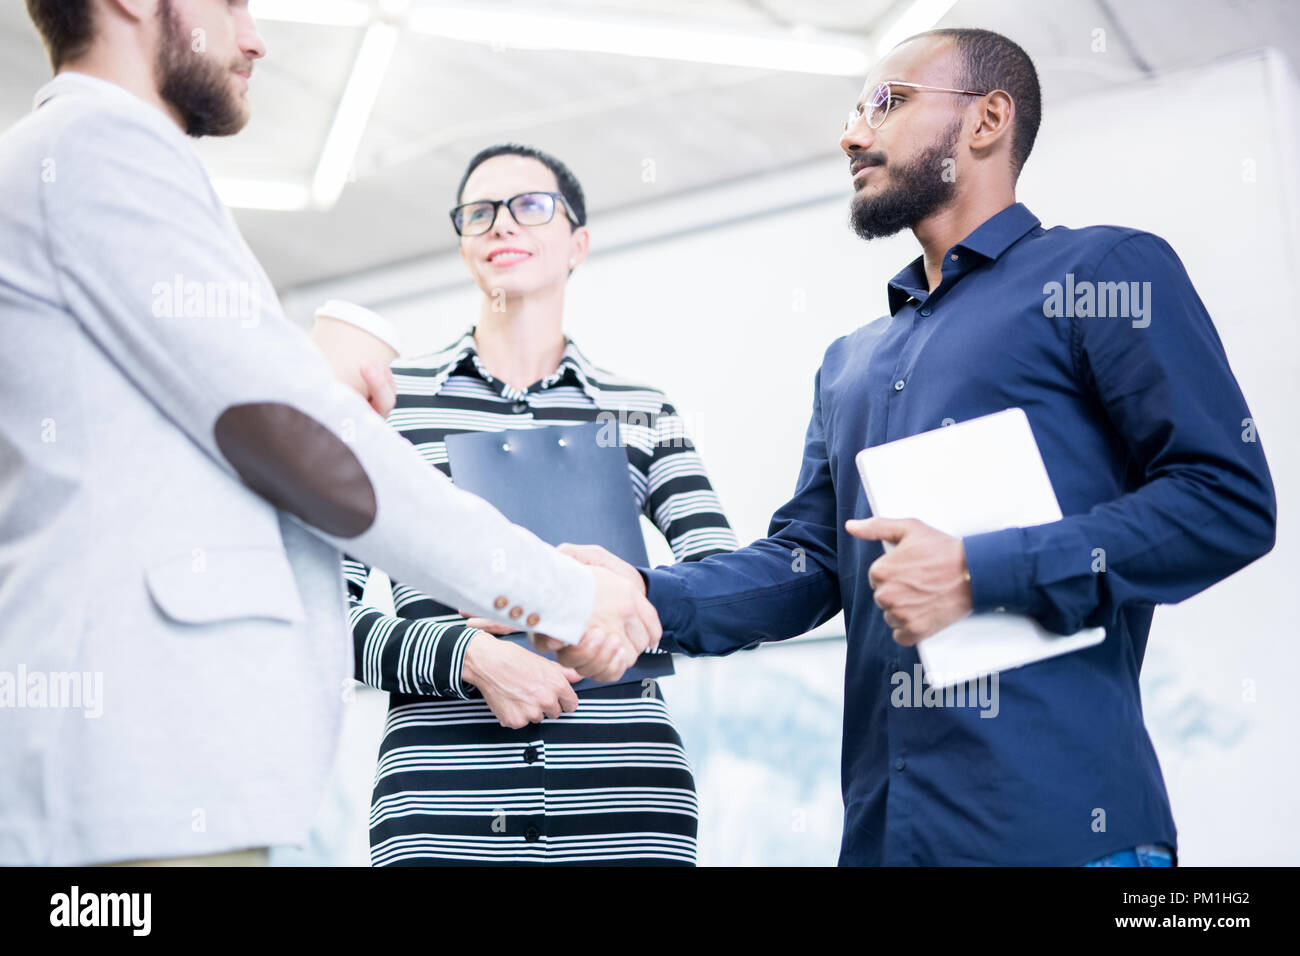 People Greeting Each Other Stock Photo 218853266 Alamy